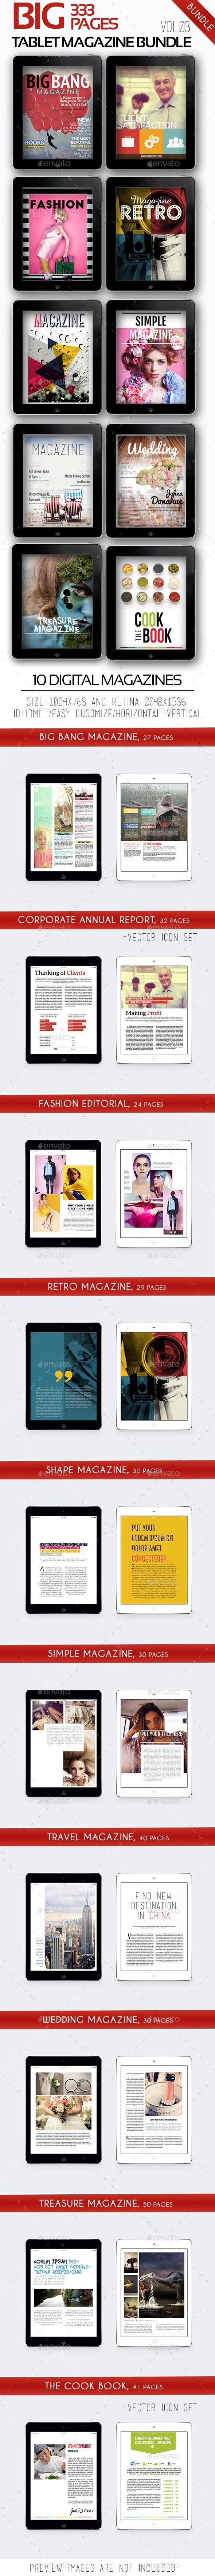 GraphicRiver Big iPad &Tablet Magazine Bundle Vol.03 11168993